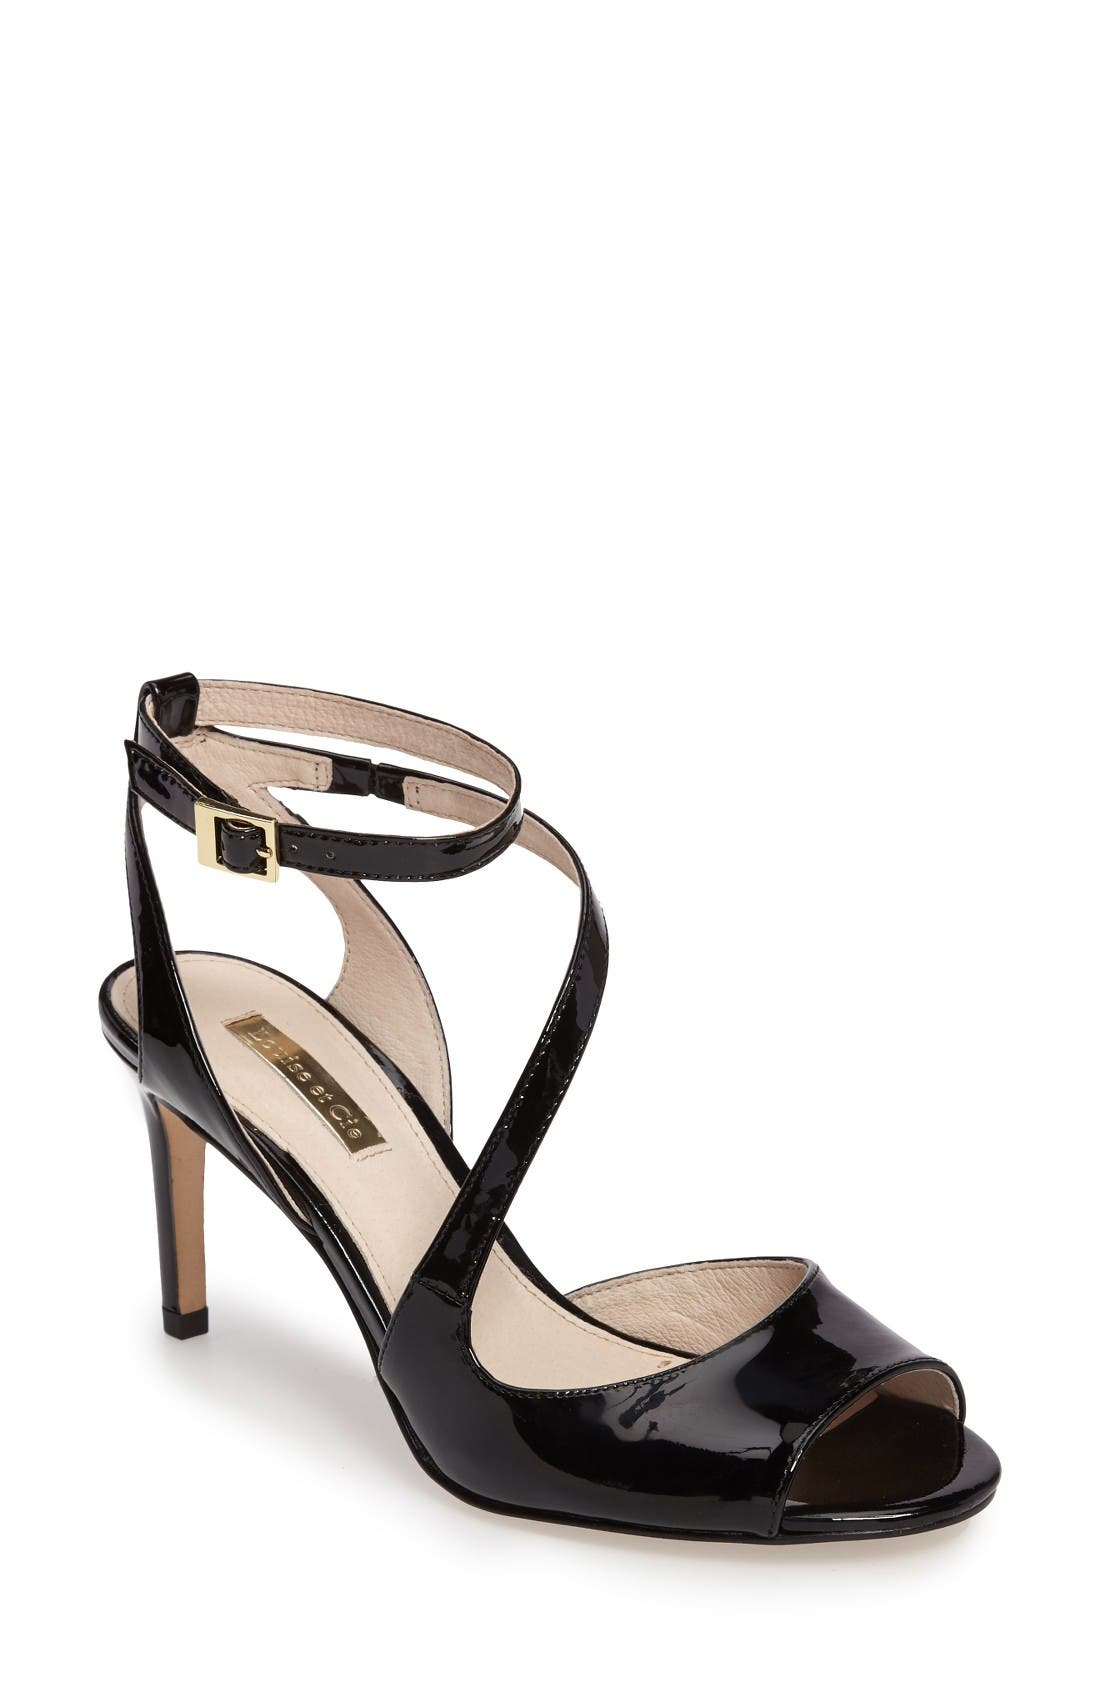 Alternate Image 1 Selected - Louise et Cie Kealy Asymmetrical Strappy Sandal (Women)